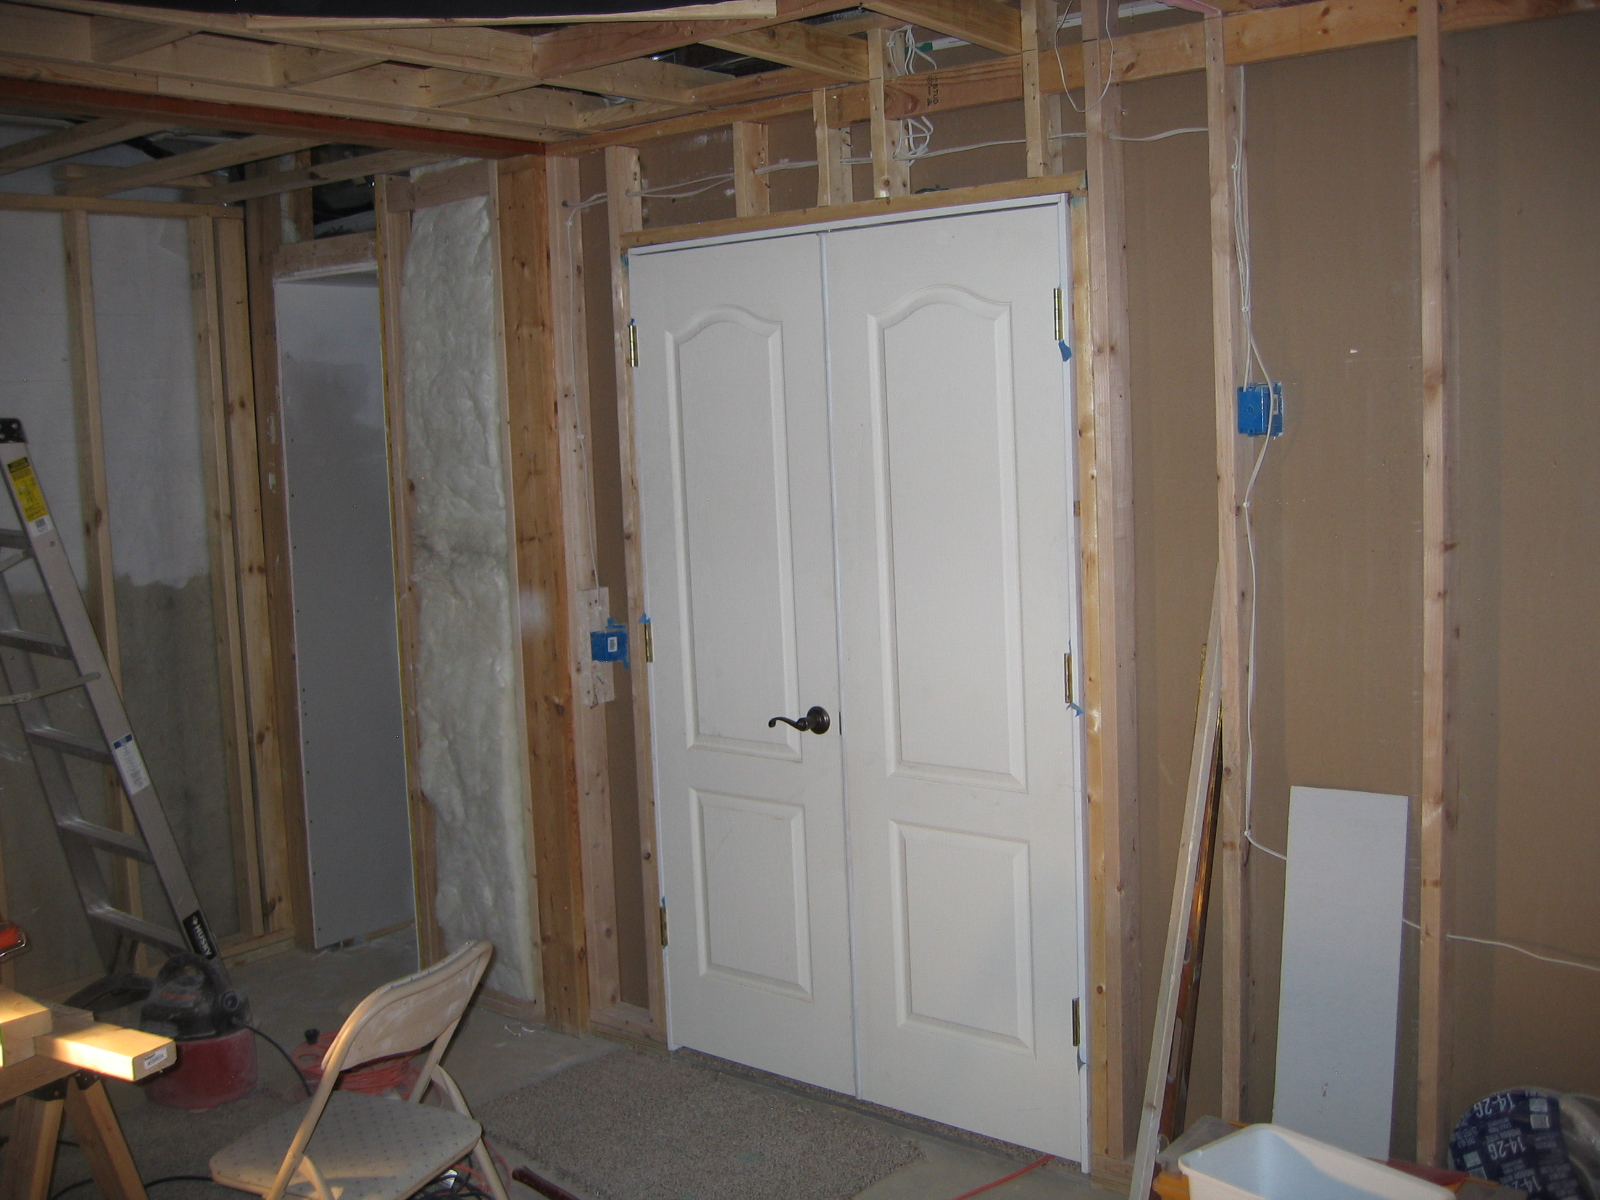 Picture of The Framing of the Theatre Room